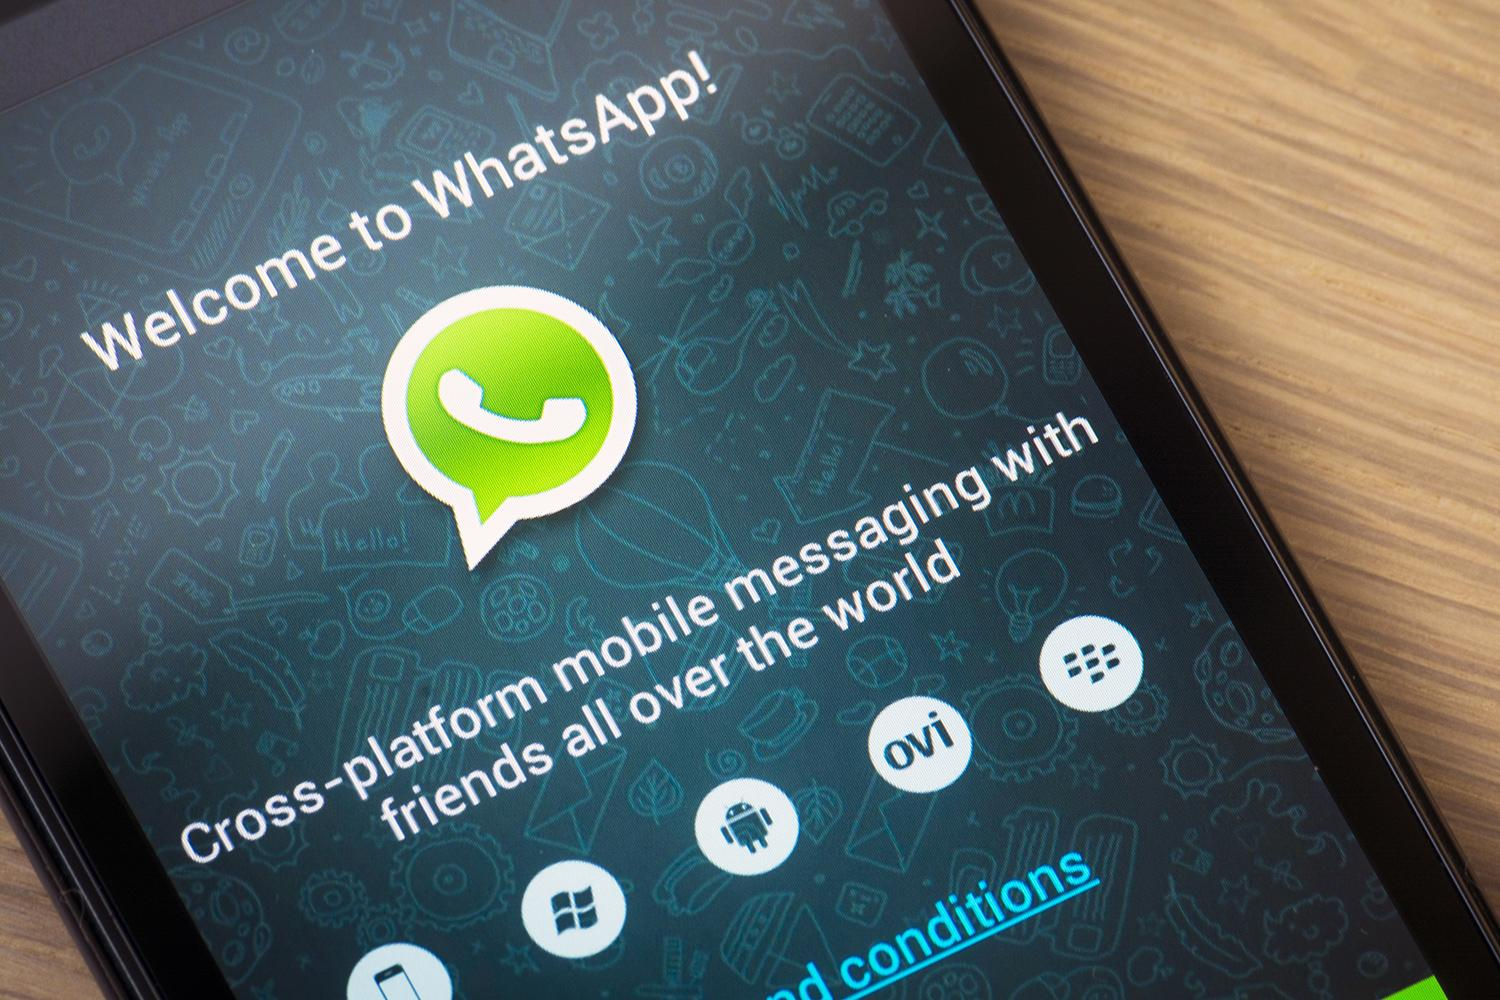 N-gage messaging app launched in India, to take on WhatsApp, Hike